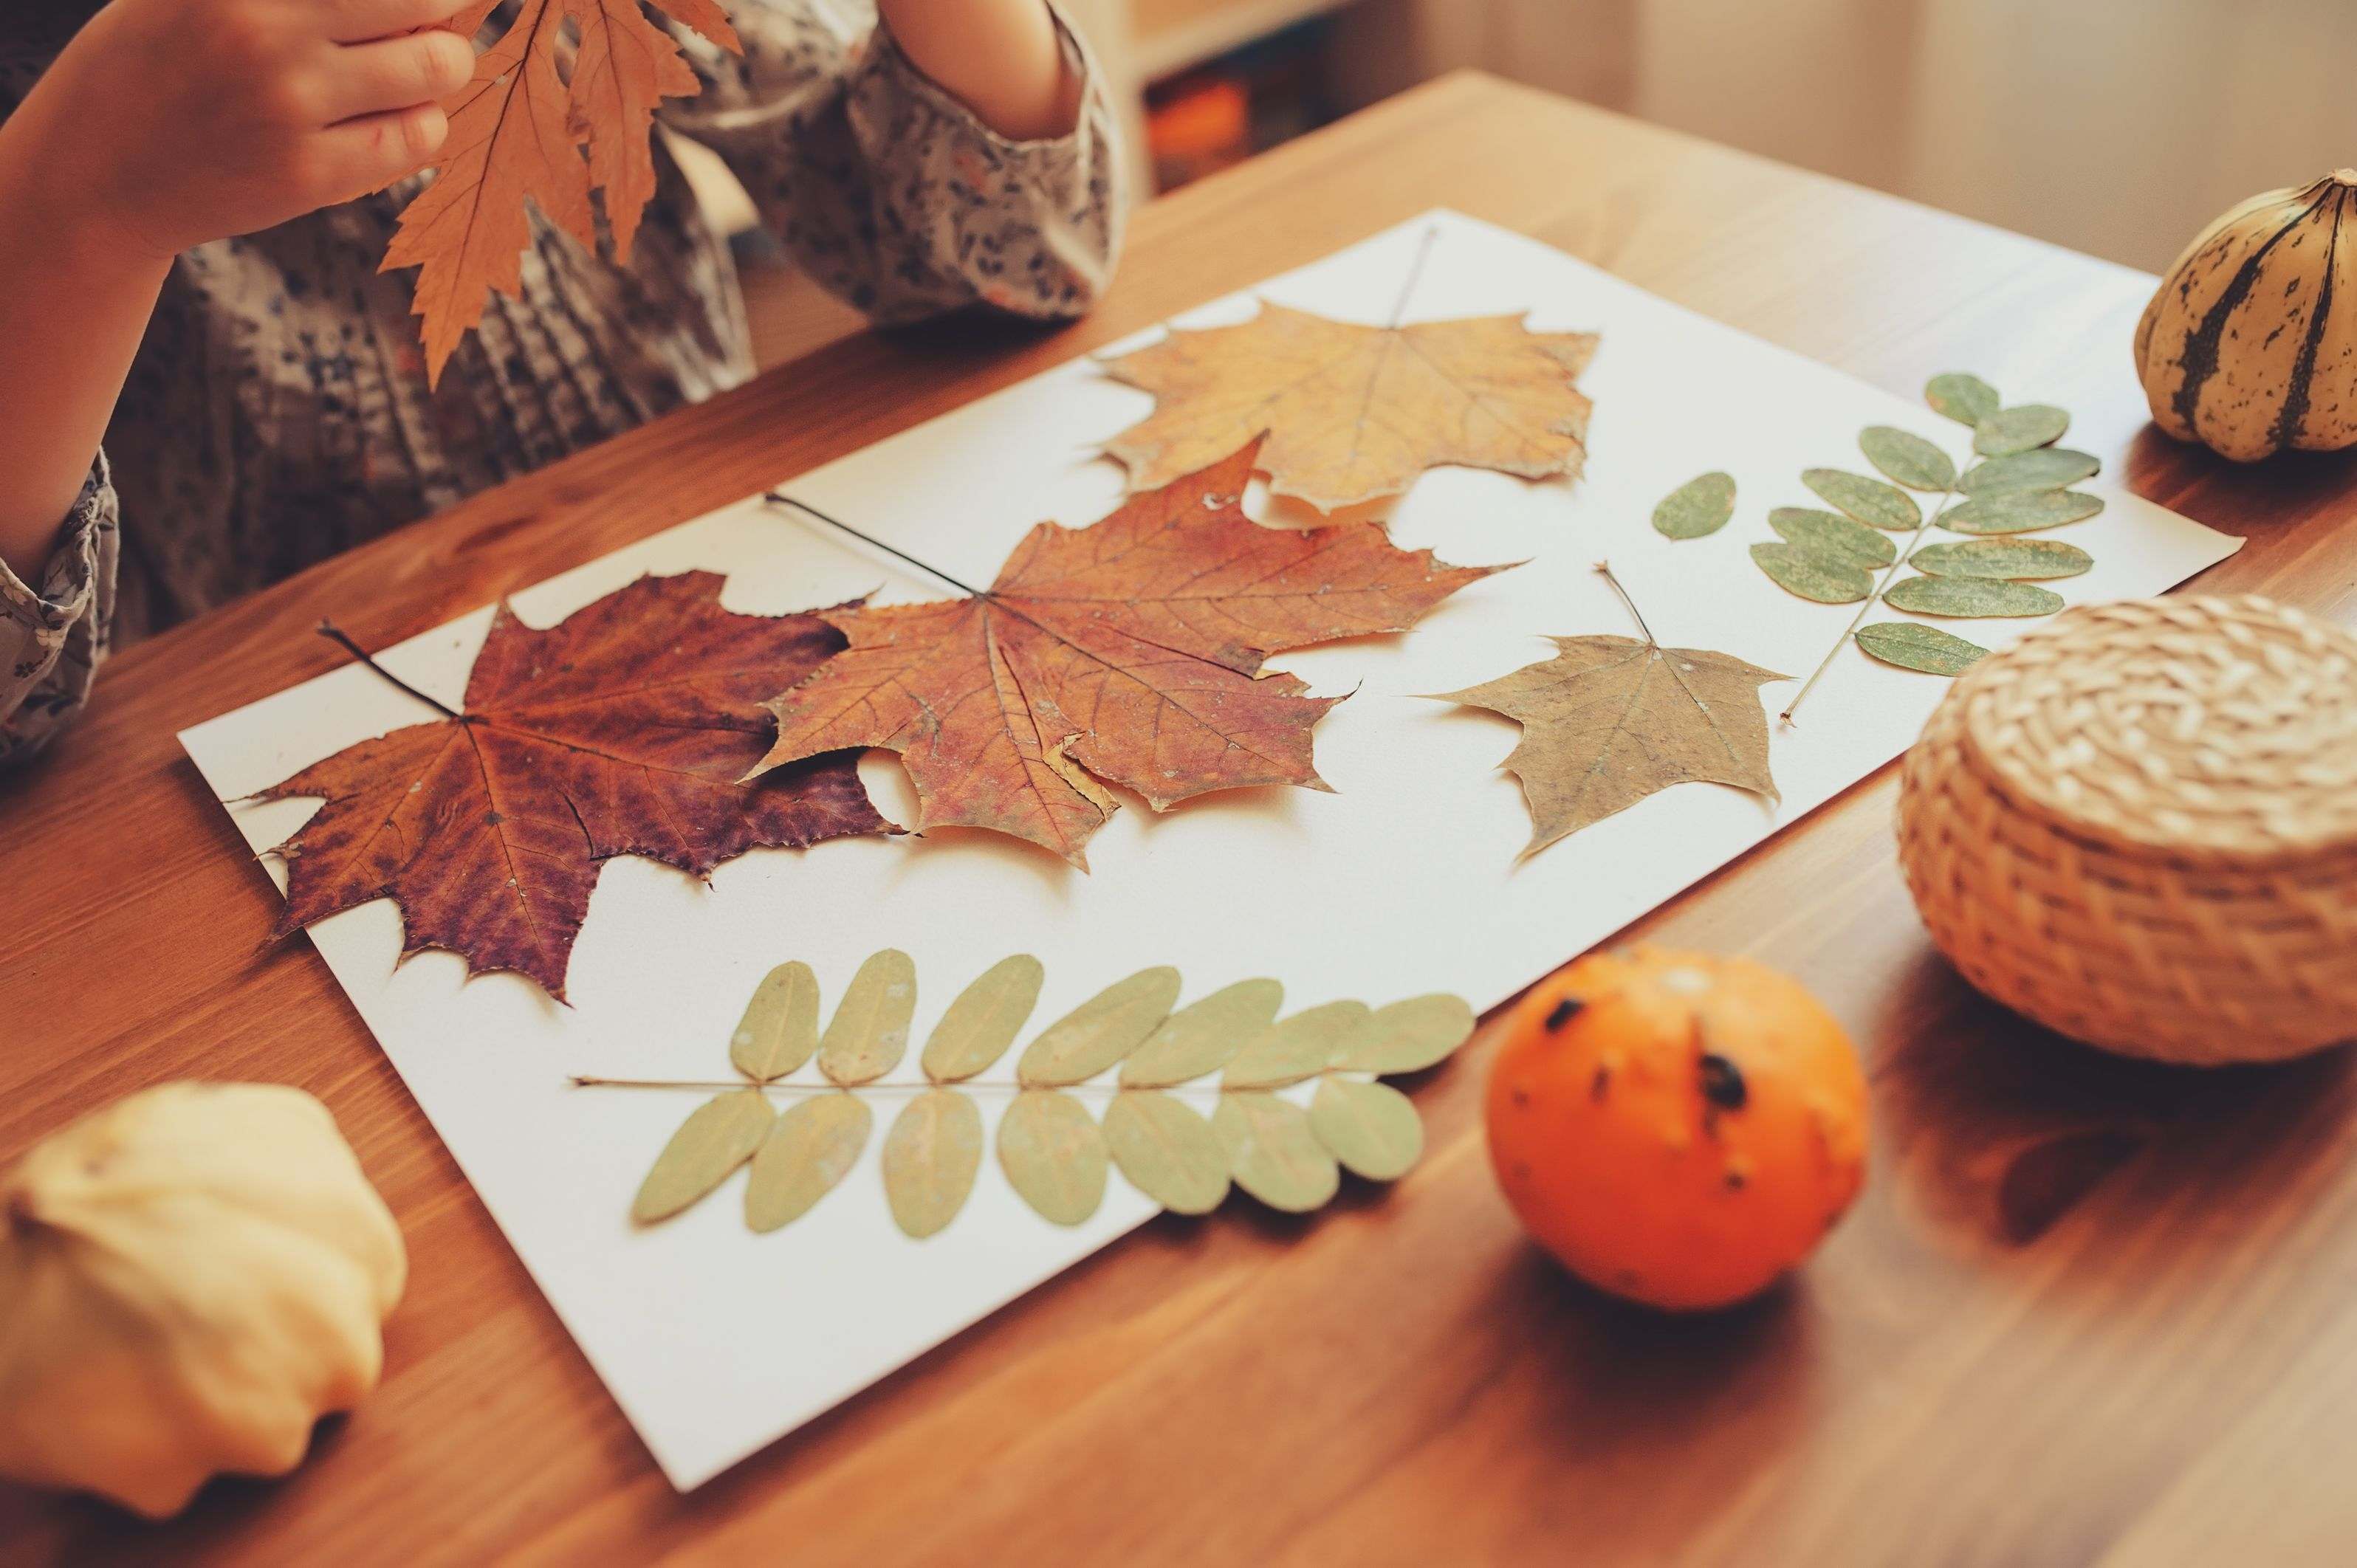 39 Best Fall Leaf Craft Ideas - DIY Decorating Projects With Leaves